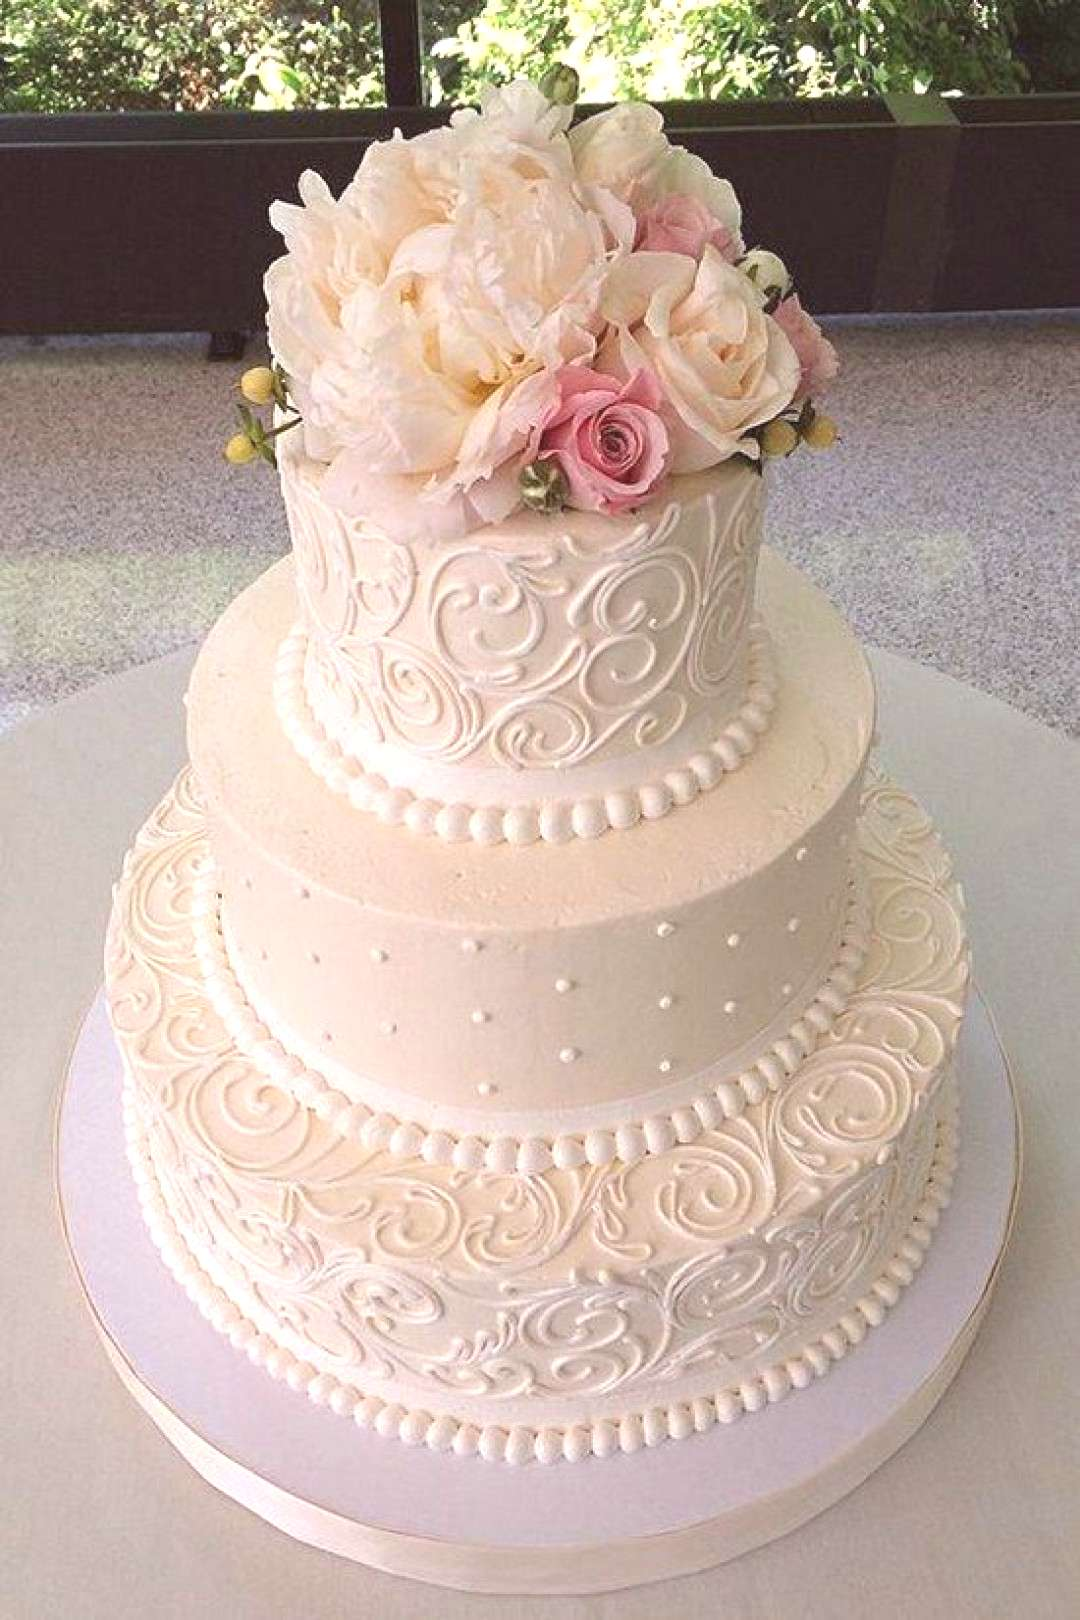 Mouth-watering Floral Wedding Cakes for Spring and Summer Mouth-watering Floral Wedding Cakes for S